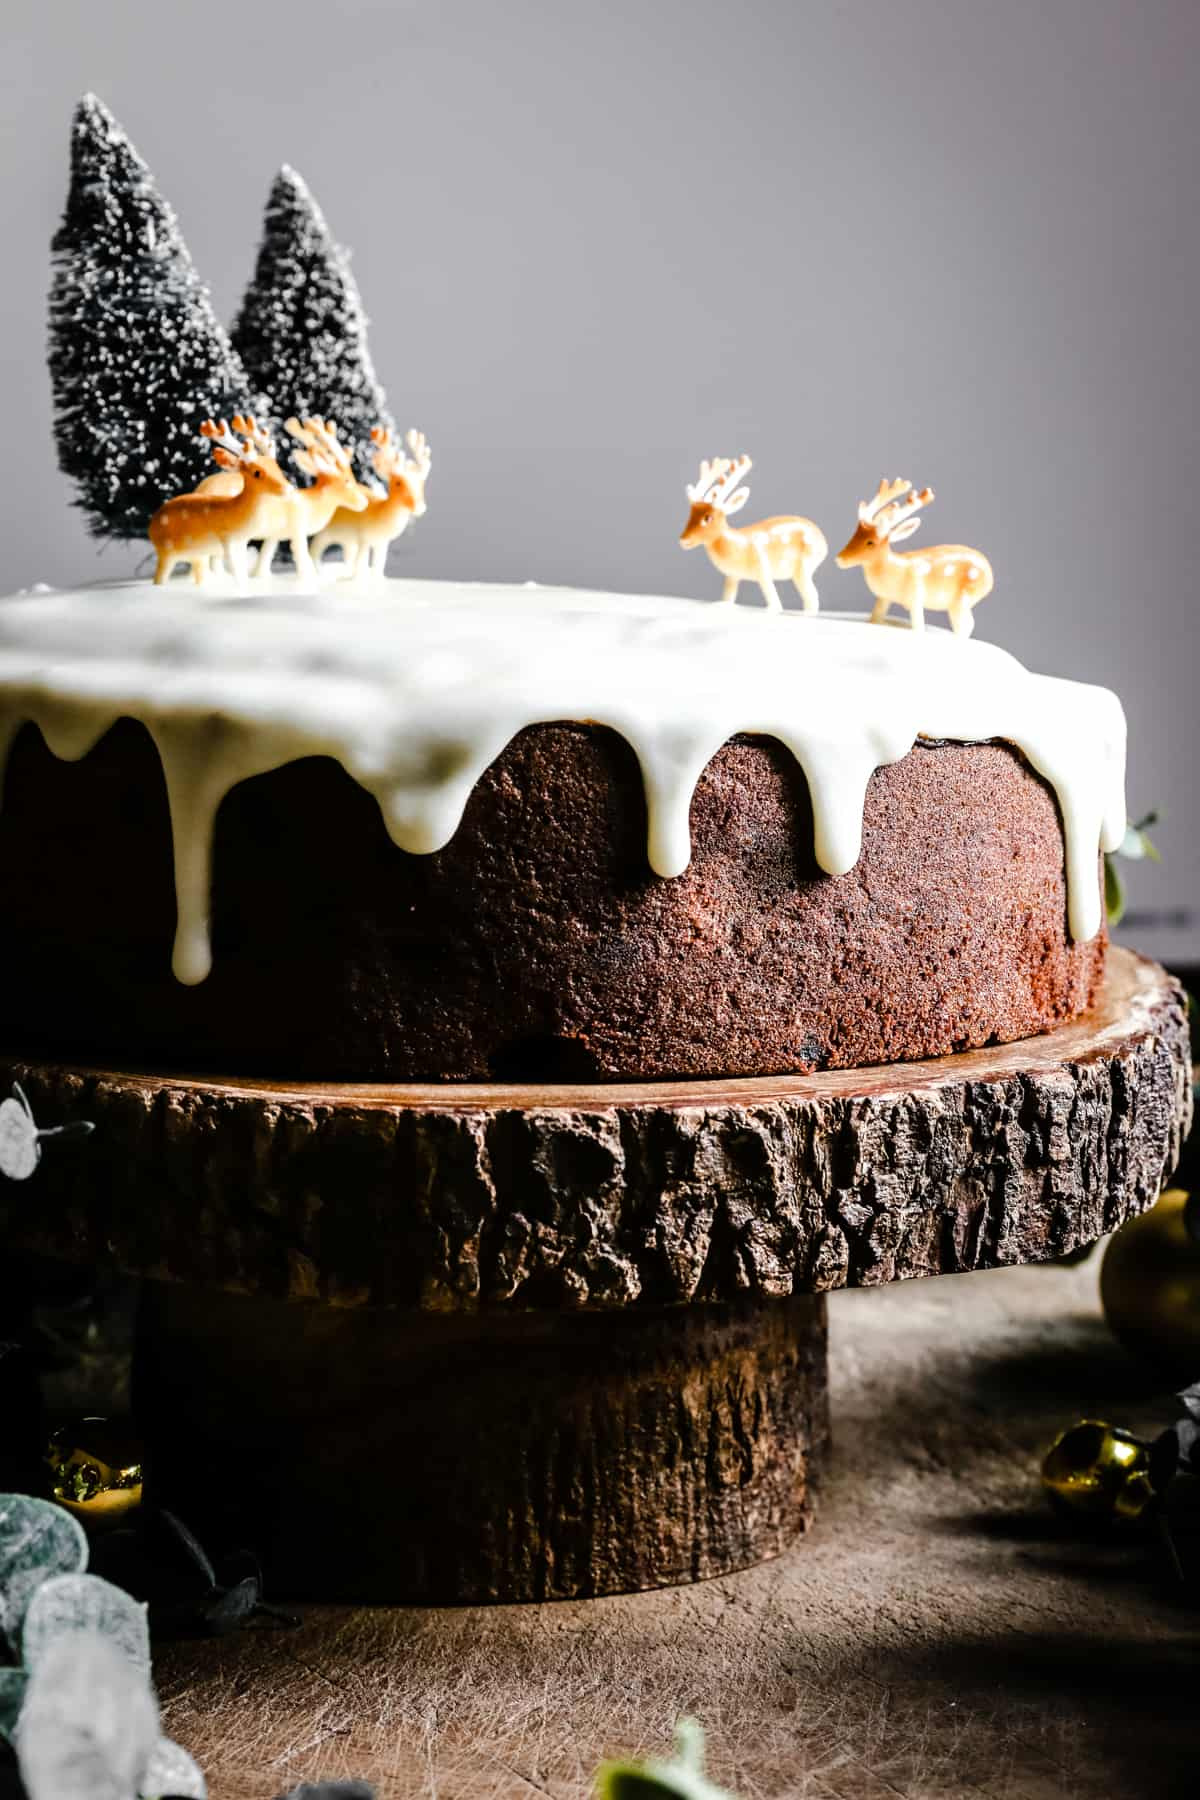 Close up of Almond & Mincemeat Christmas Sponge Cake on a cake stand